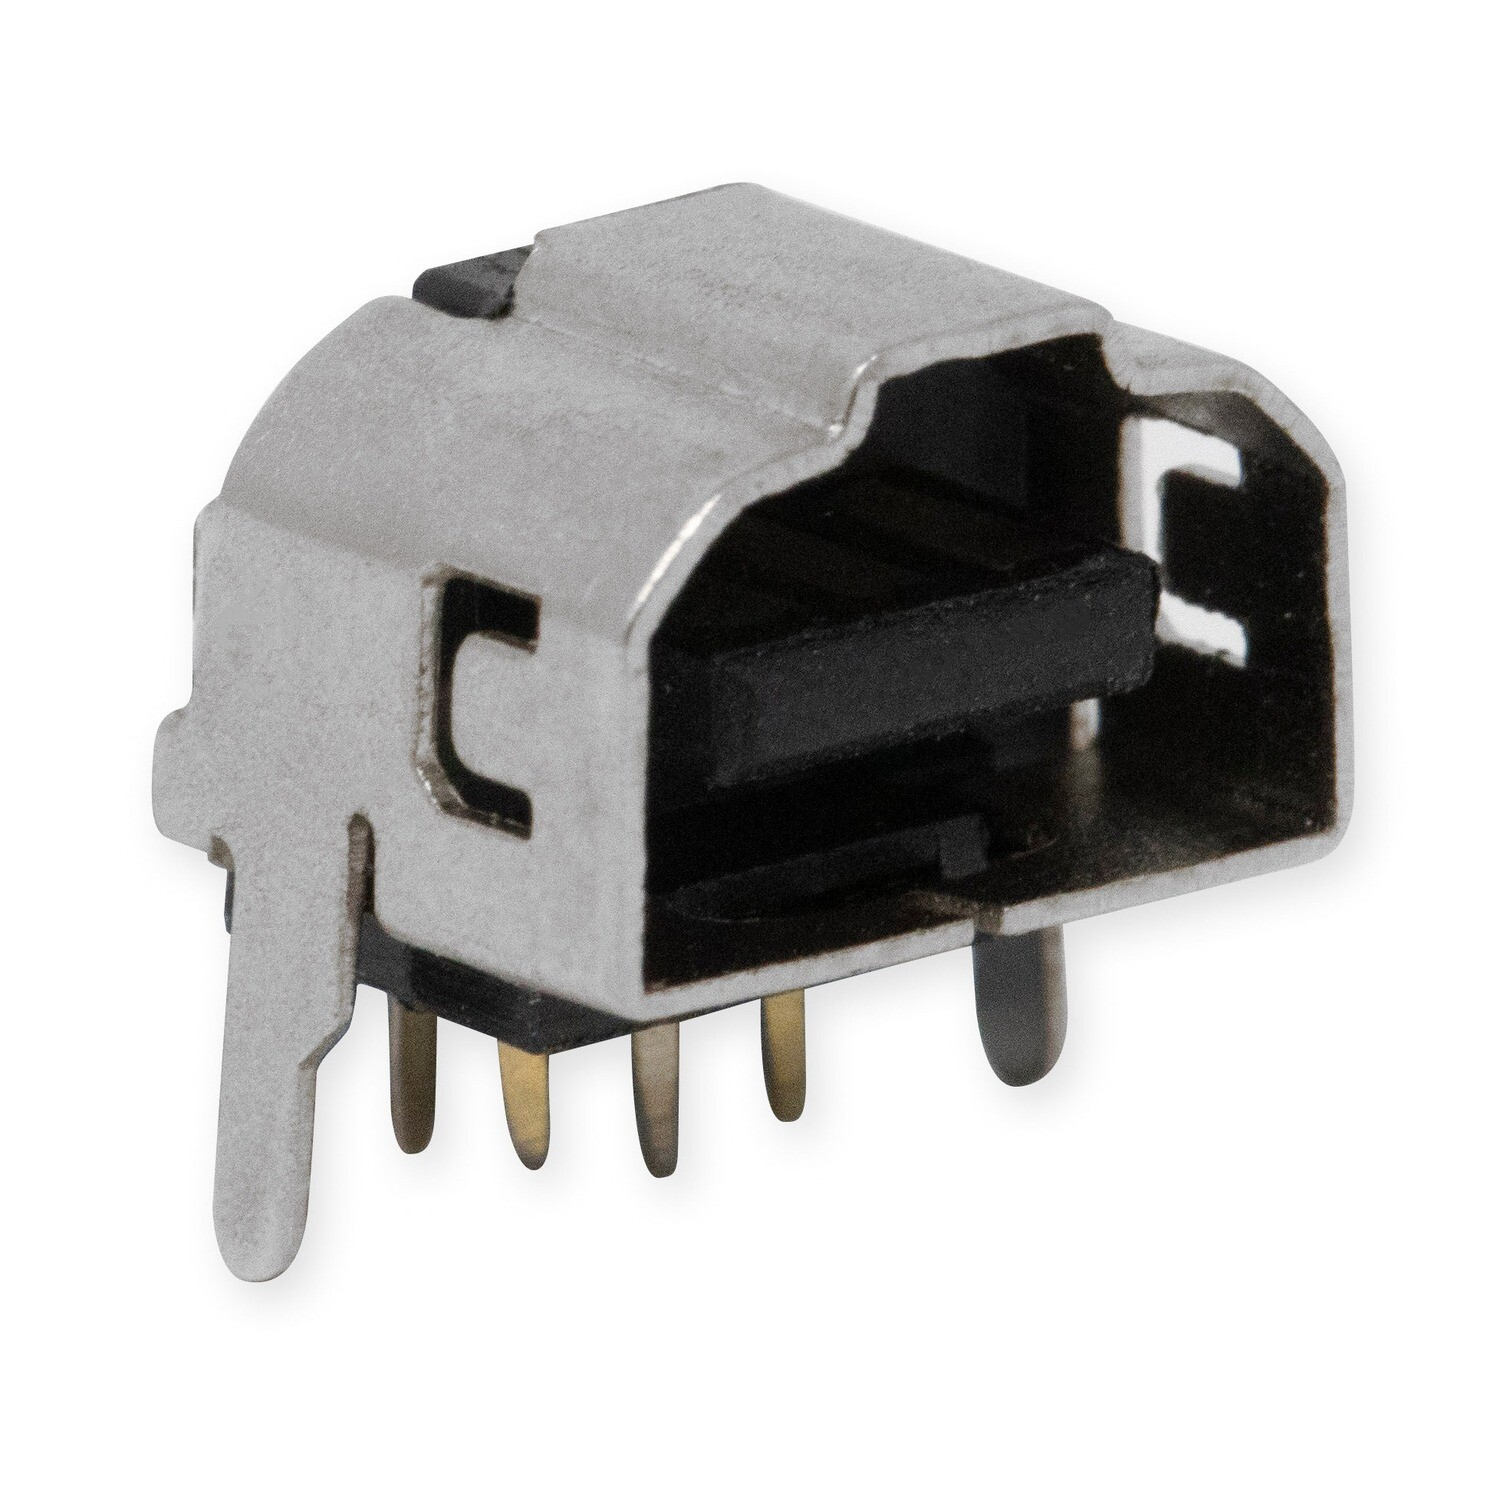 Game Boy Advance EXT Port Connector